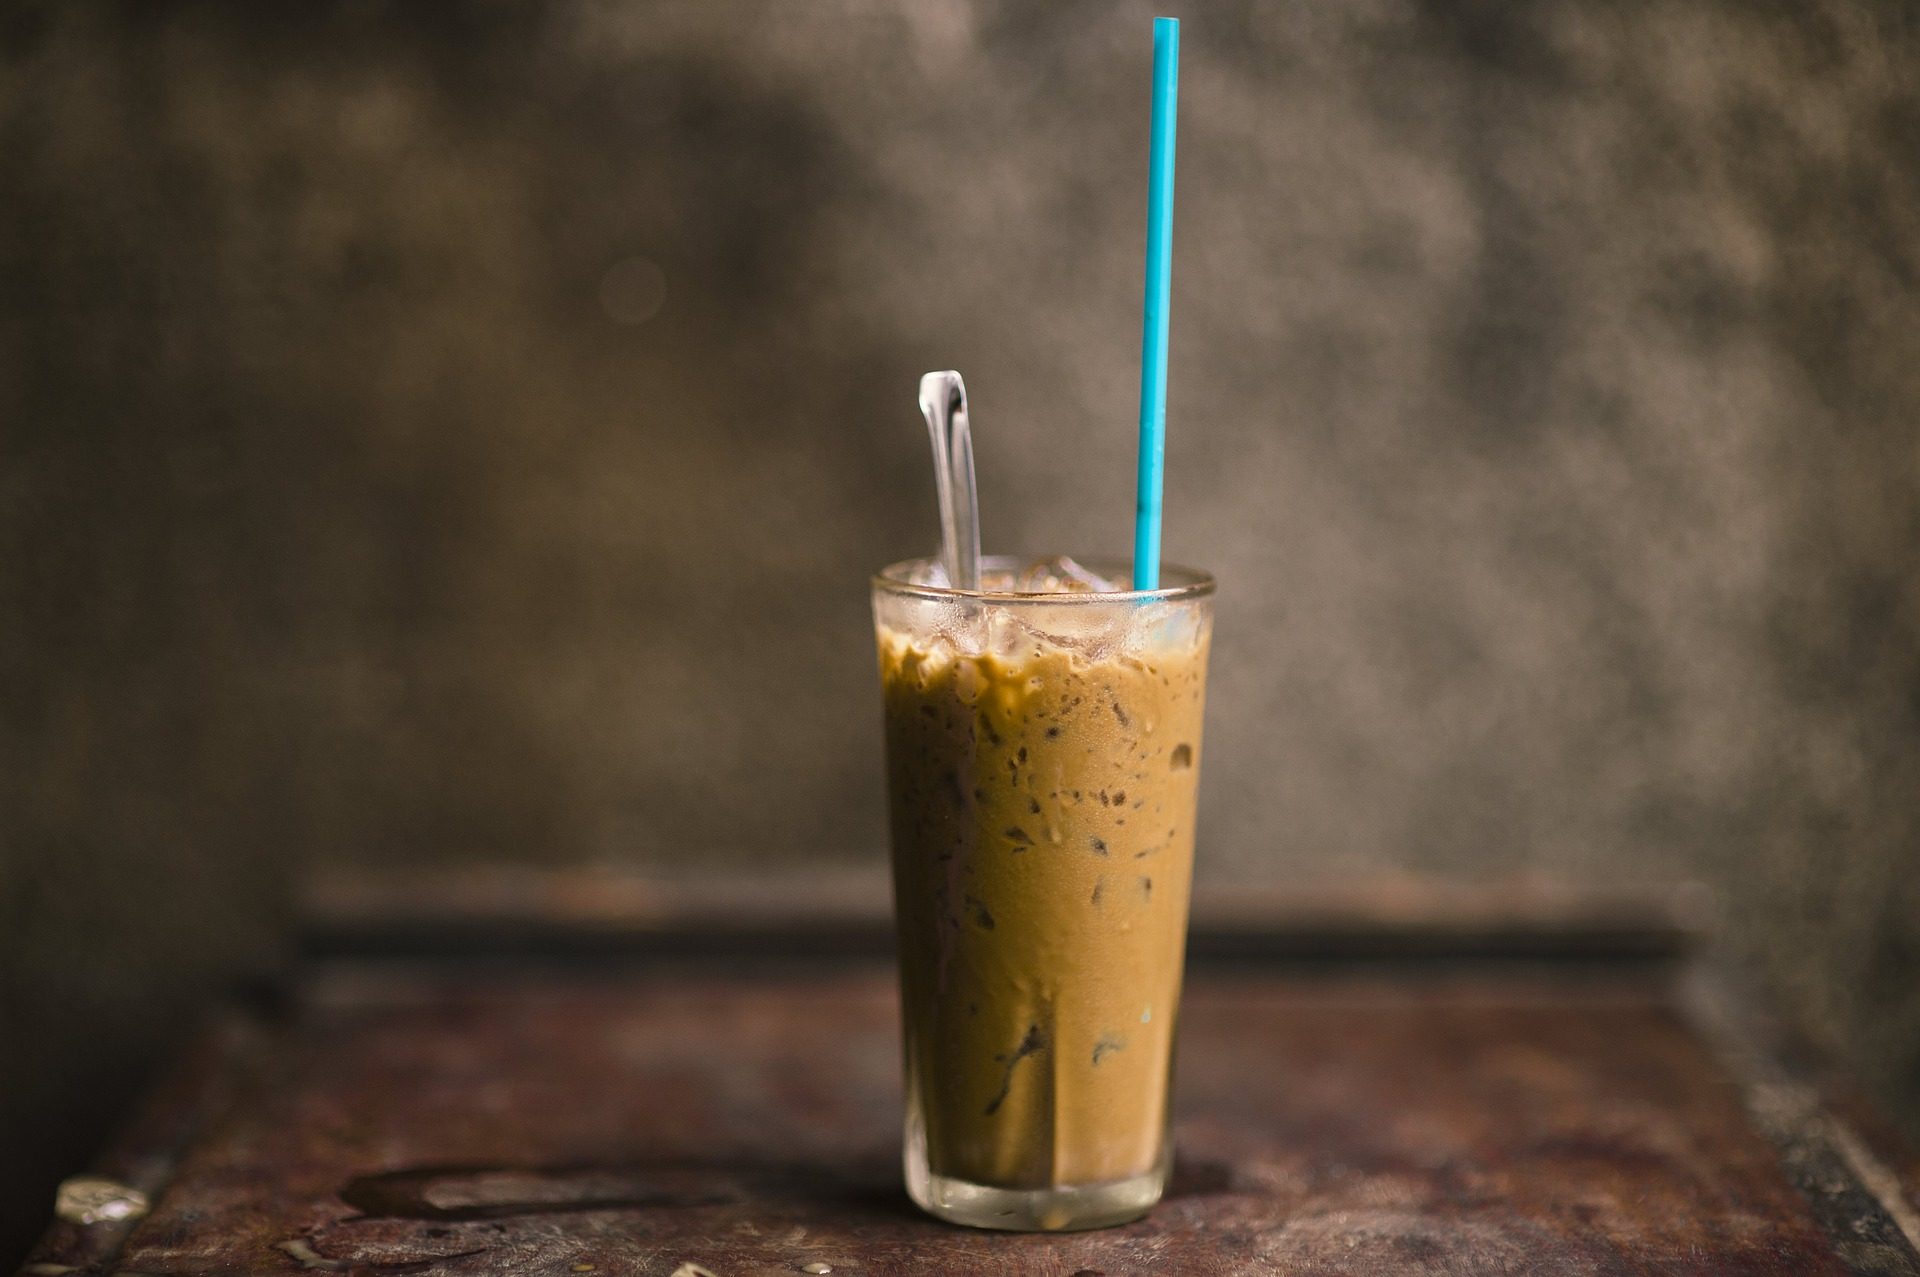 Make Your Own Homemade Iced Capp's featured image